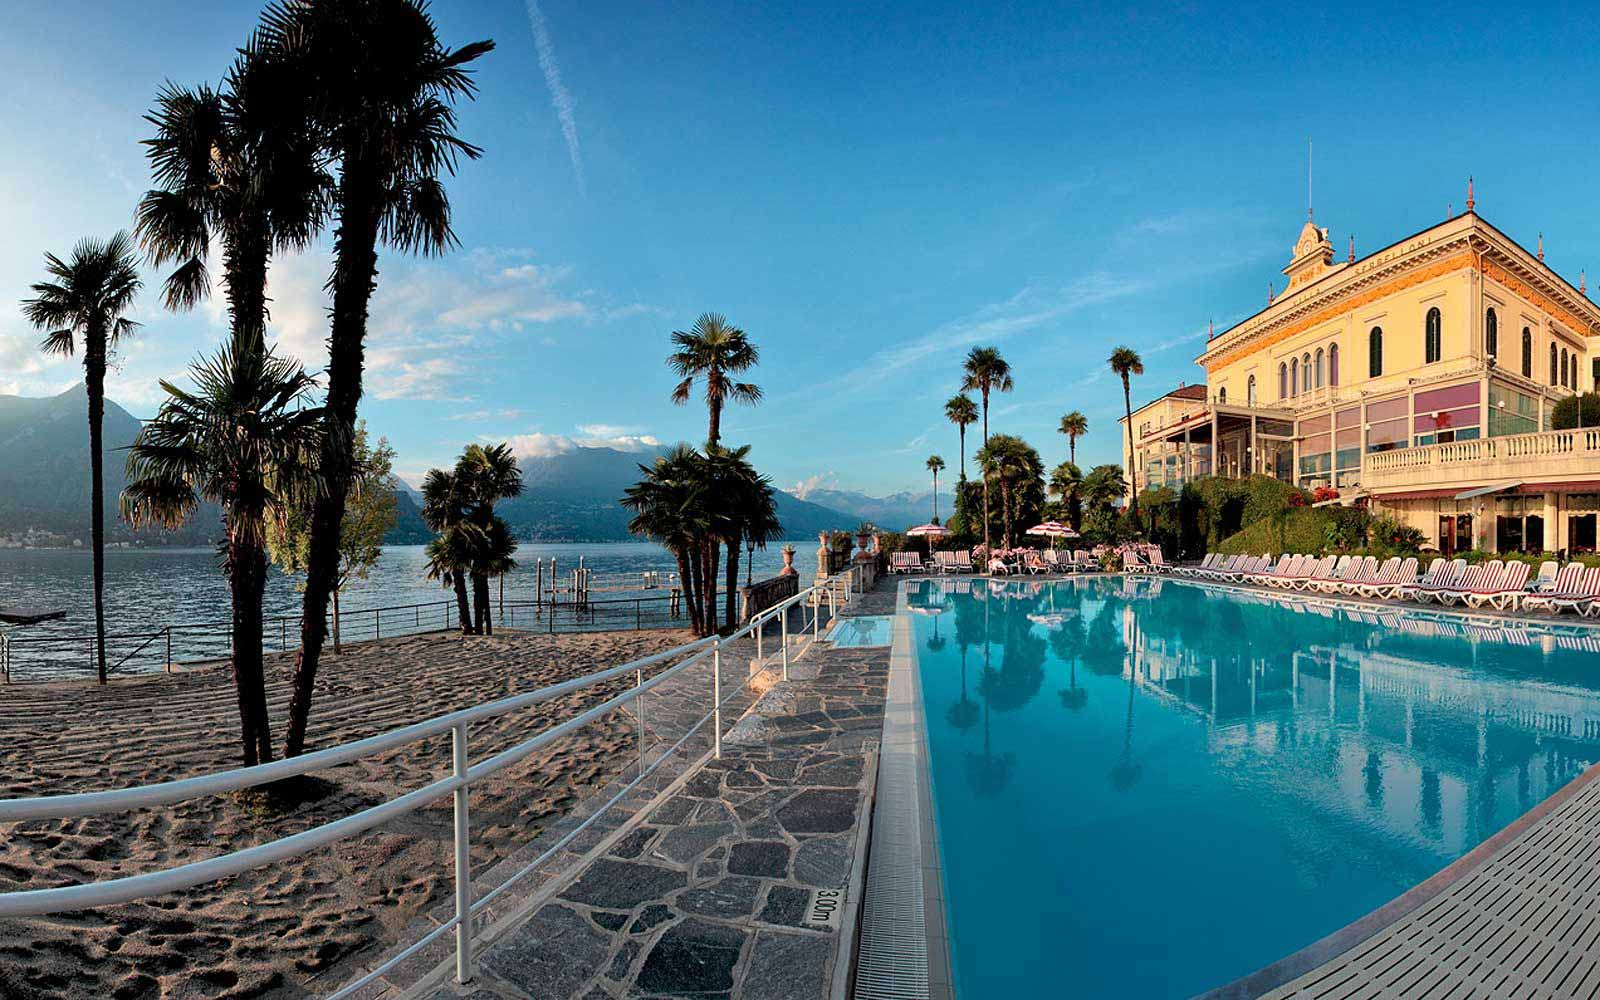 Swimming pool at Grand Hotel Villa Serbelloni